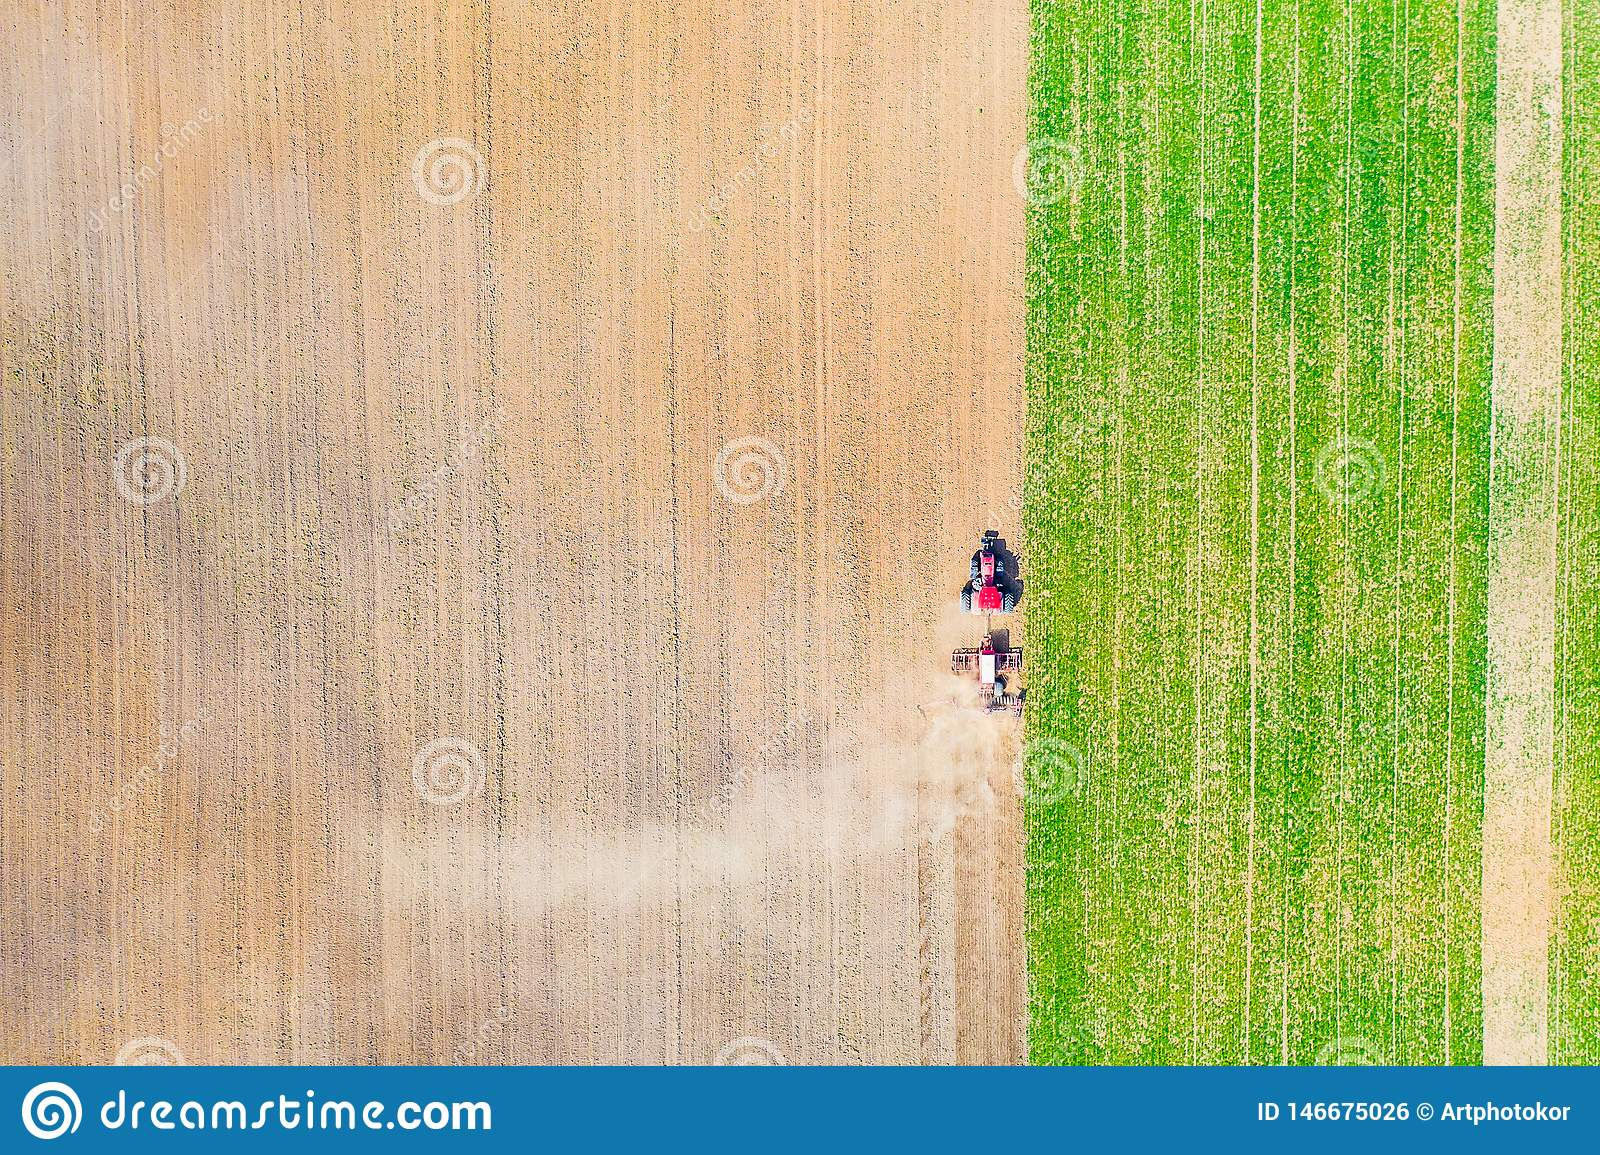 Farmland aerial texture. Tractor ploughing field in dry season